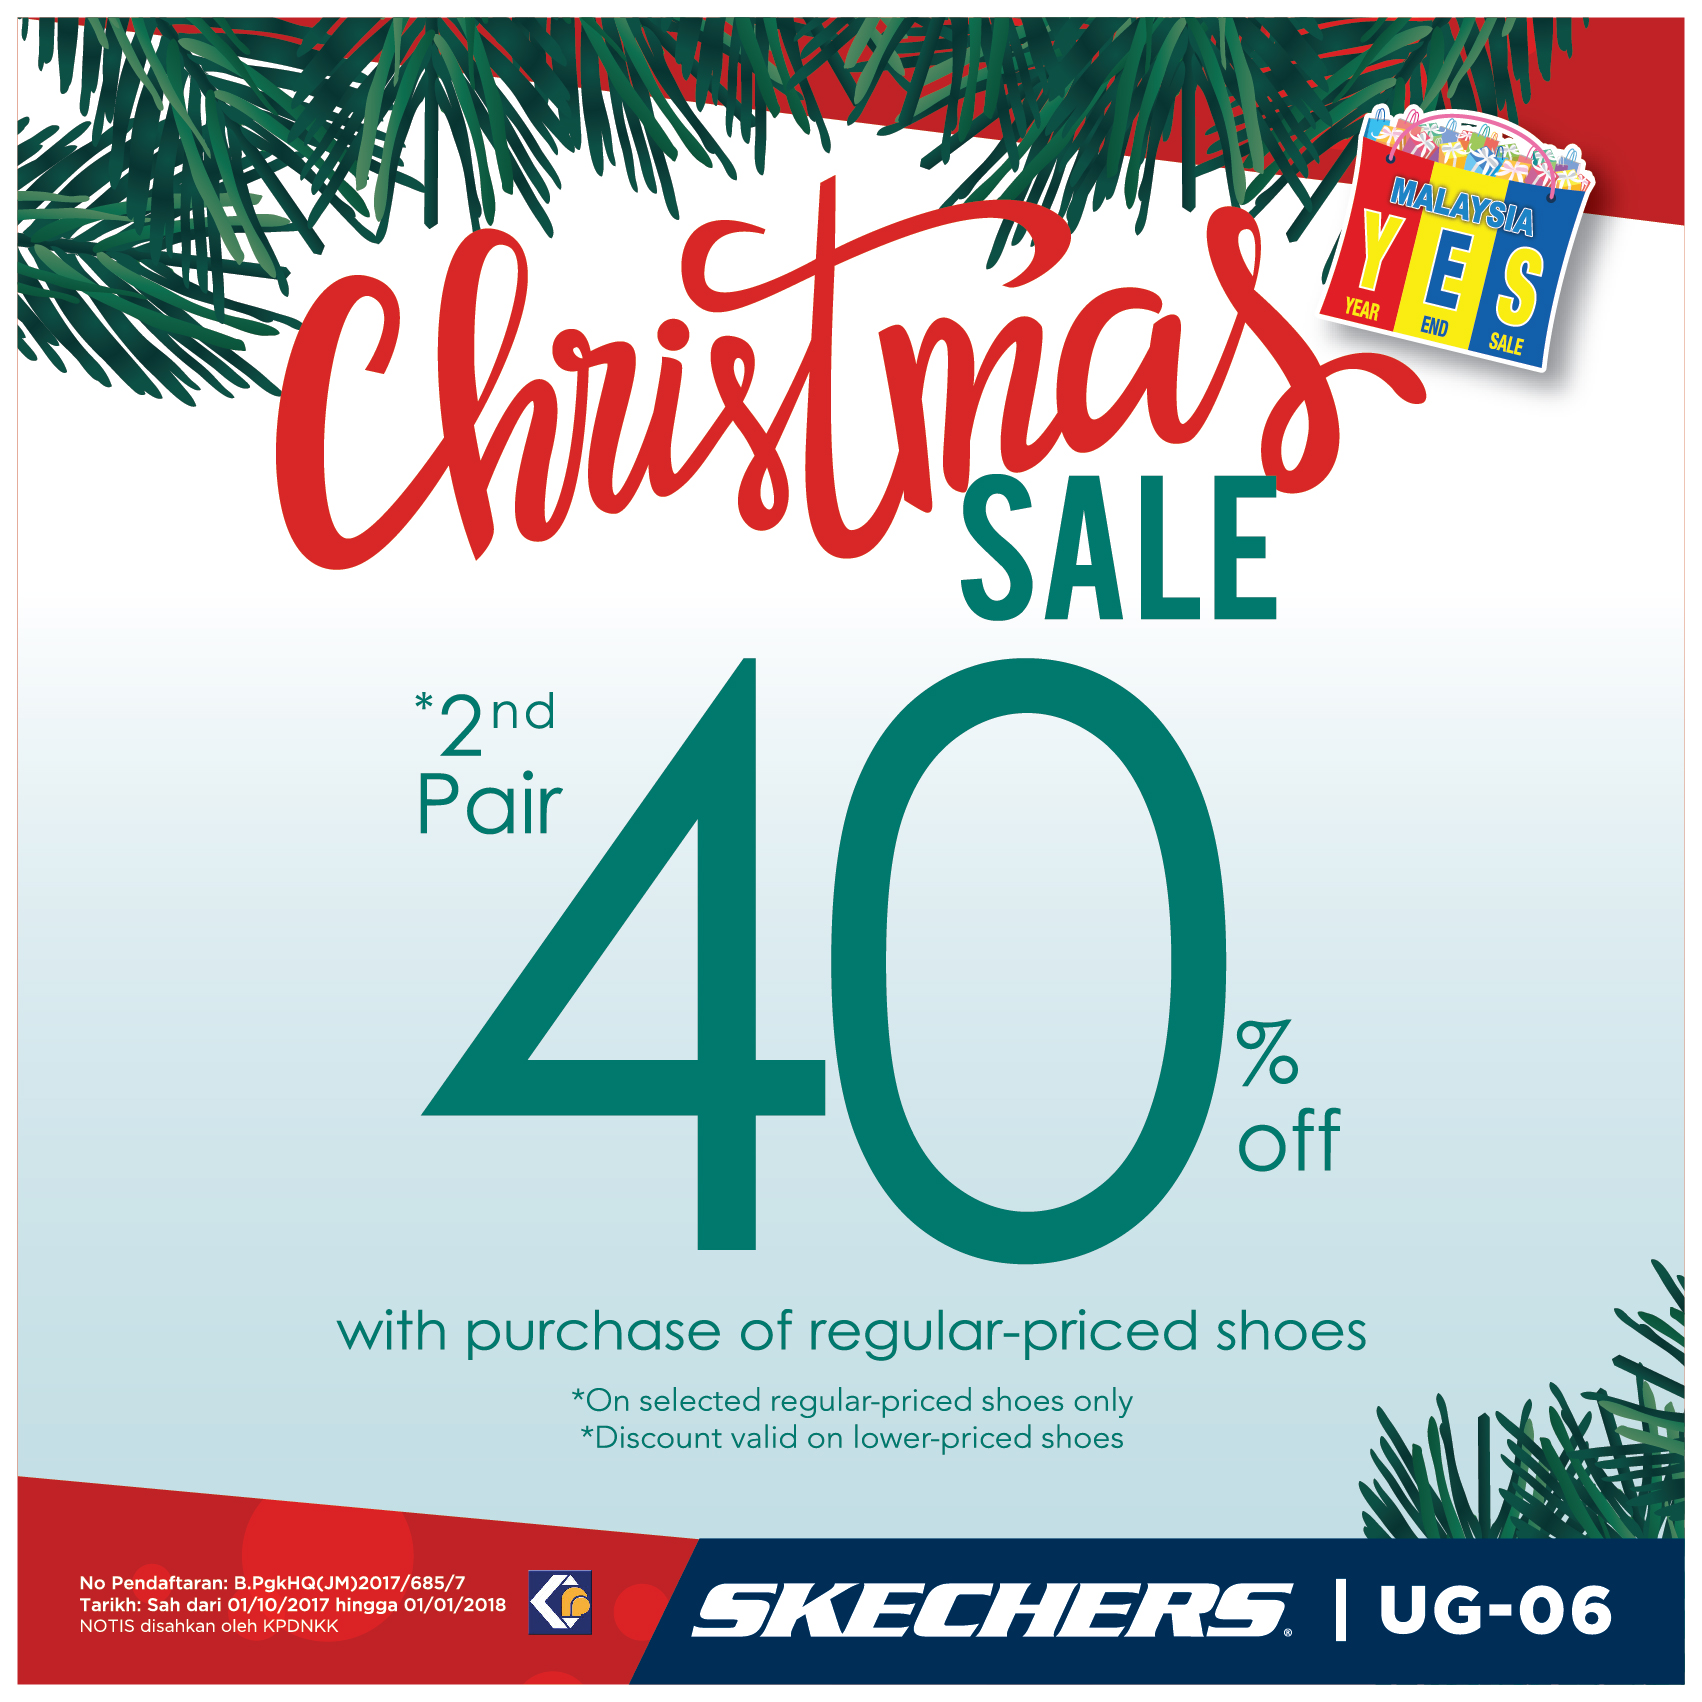 Skechers Christmas Sale